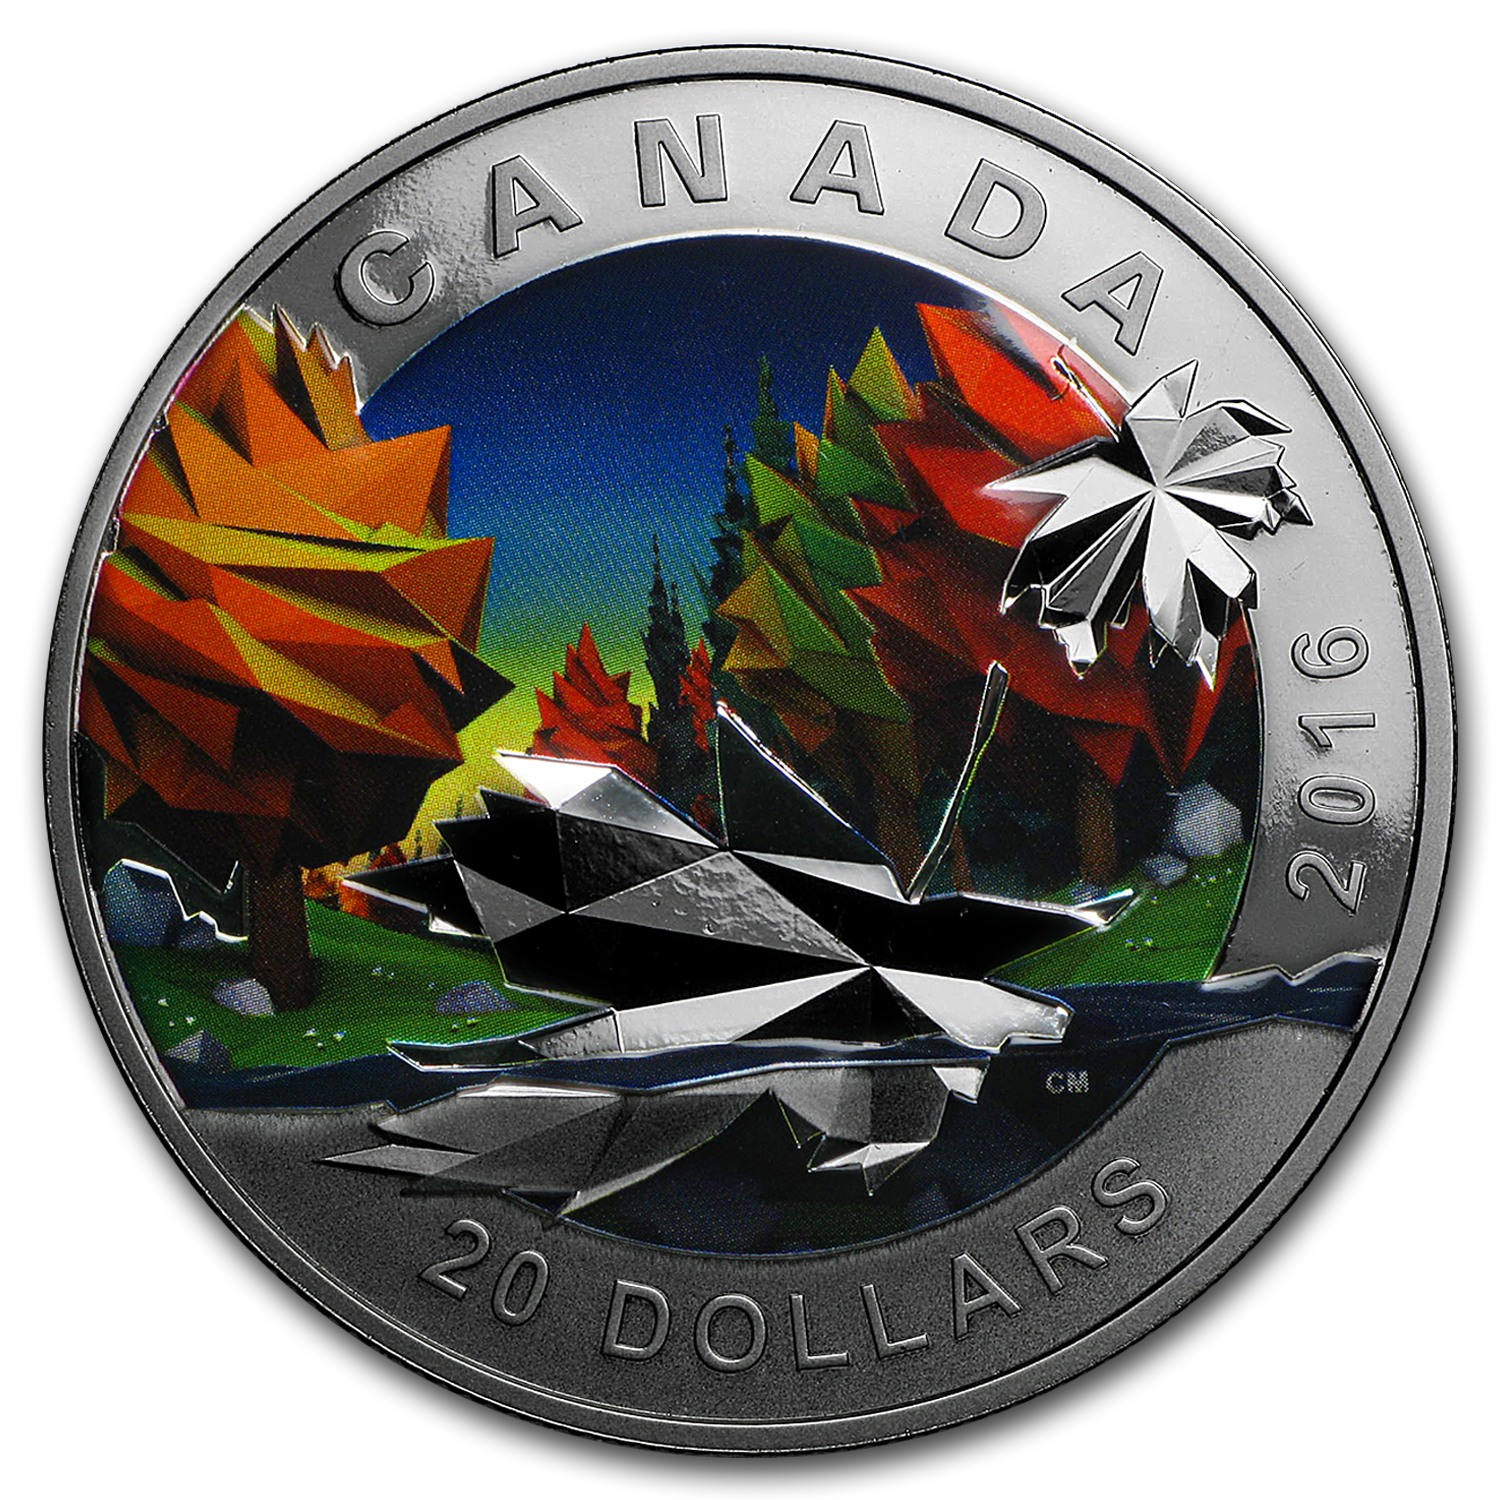 2016 Canada 1 oz Silver Geometry in Art: The Maple Leaf